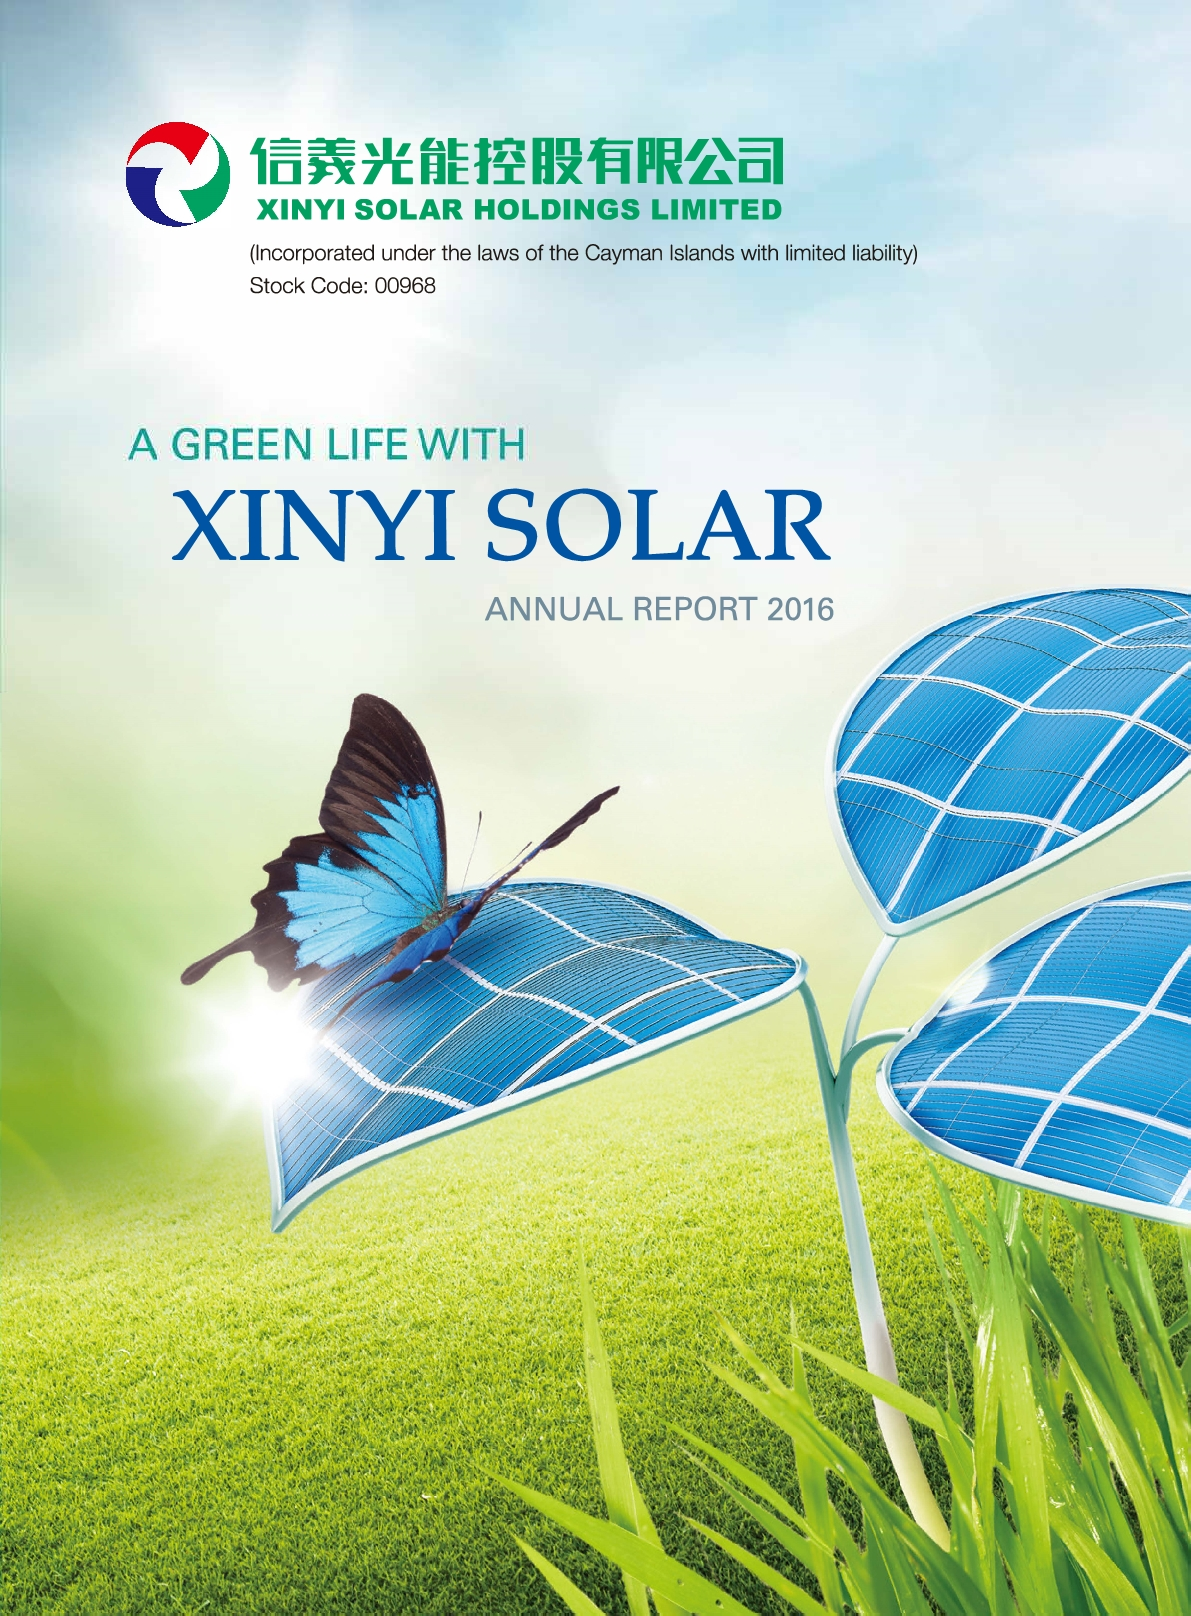 Xinyi Solar Holdings Limted